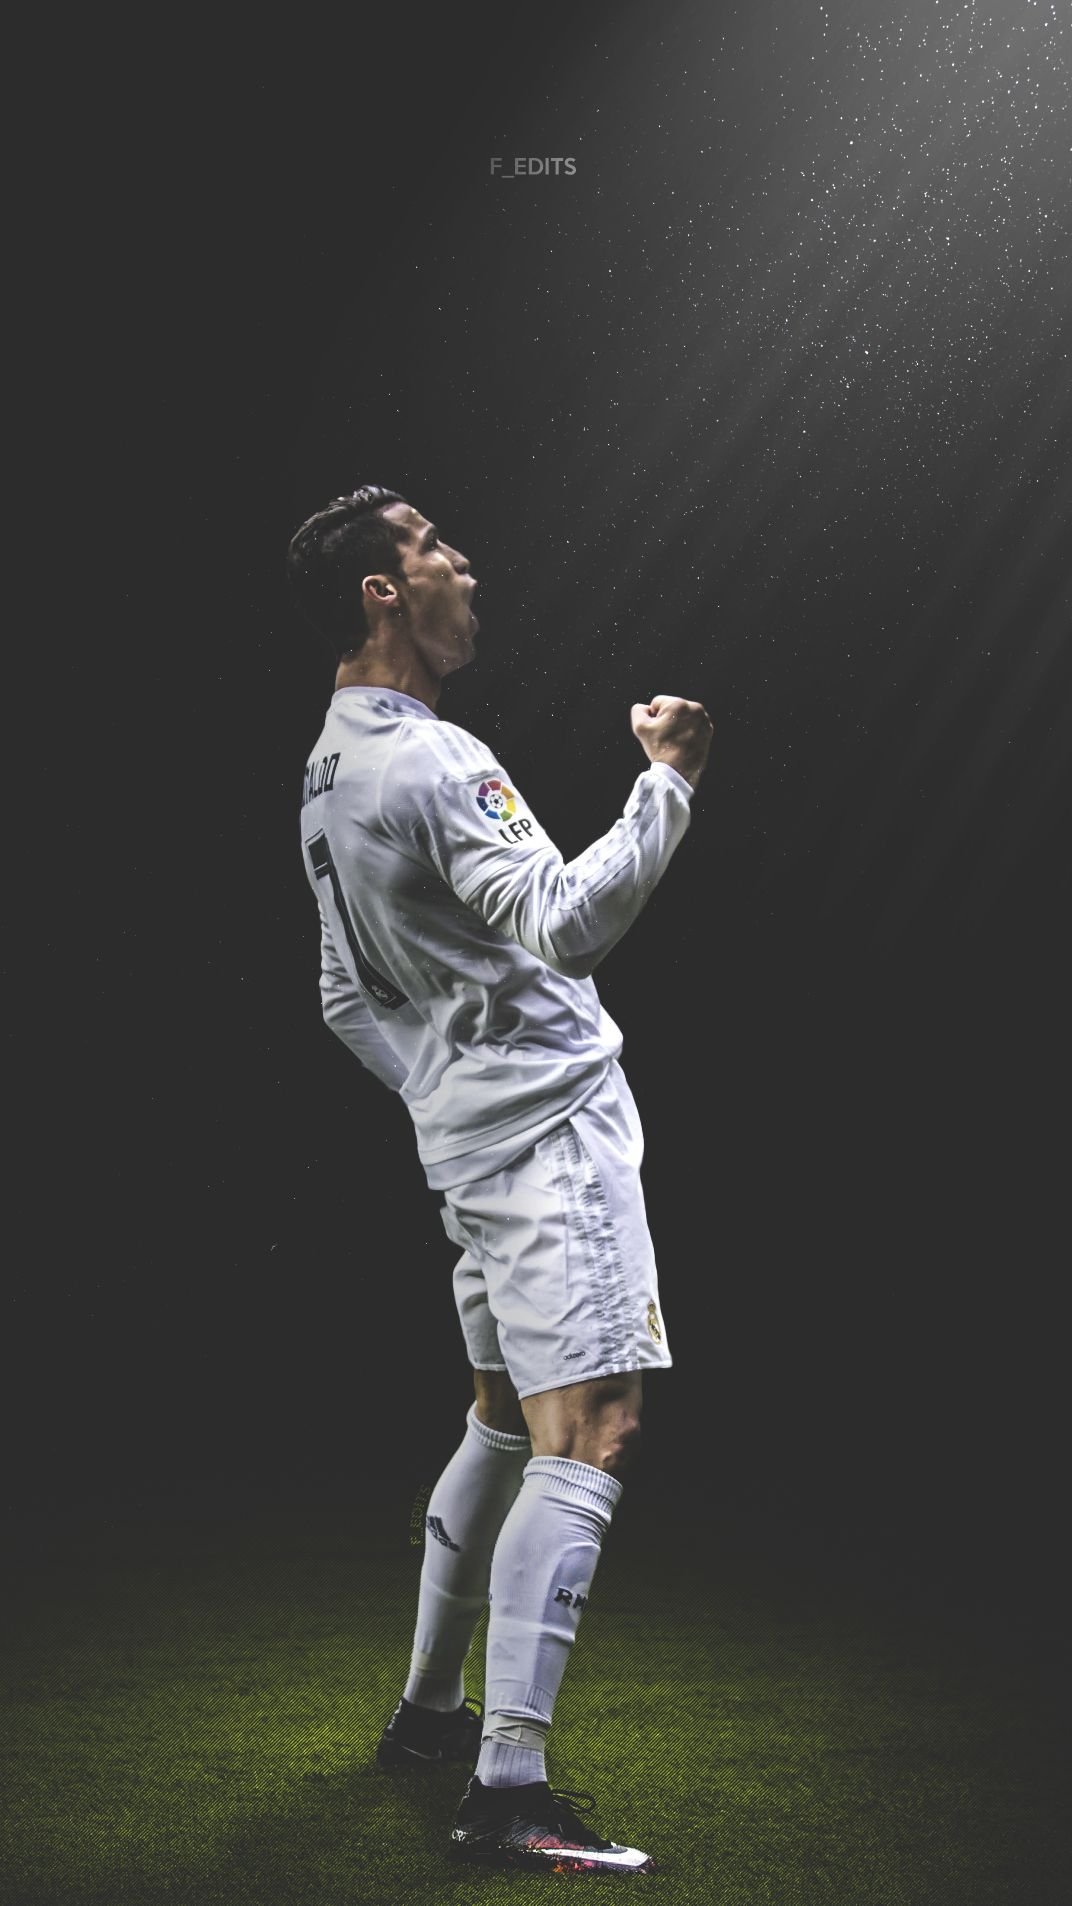 Iphone wallpaper tumblr football - Ronaldo Real